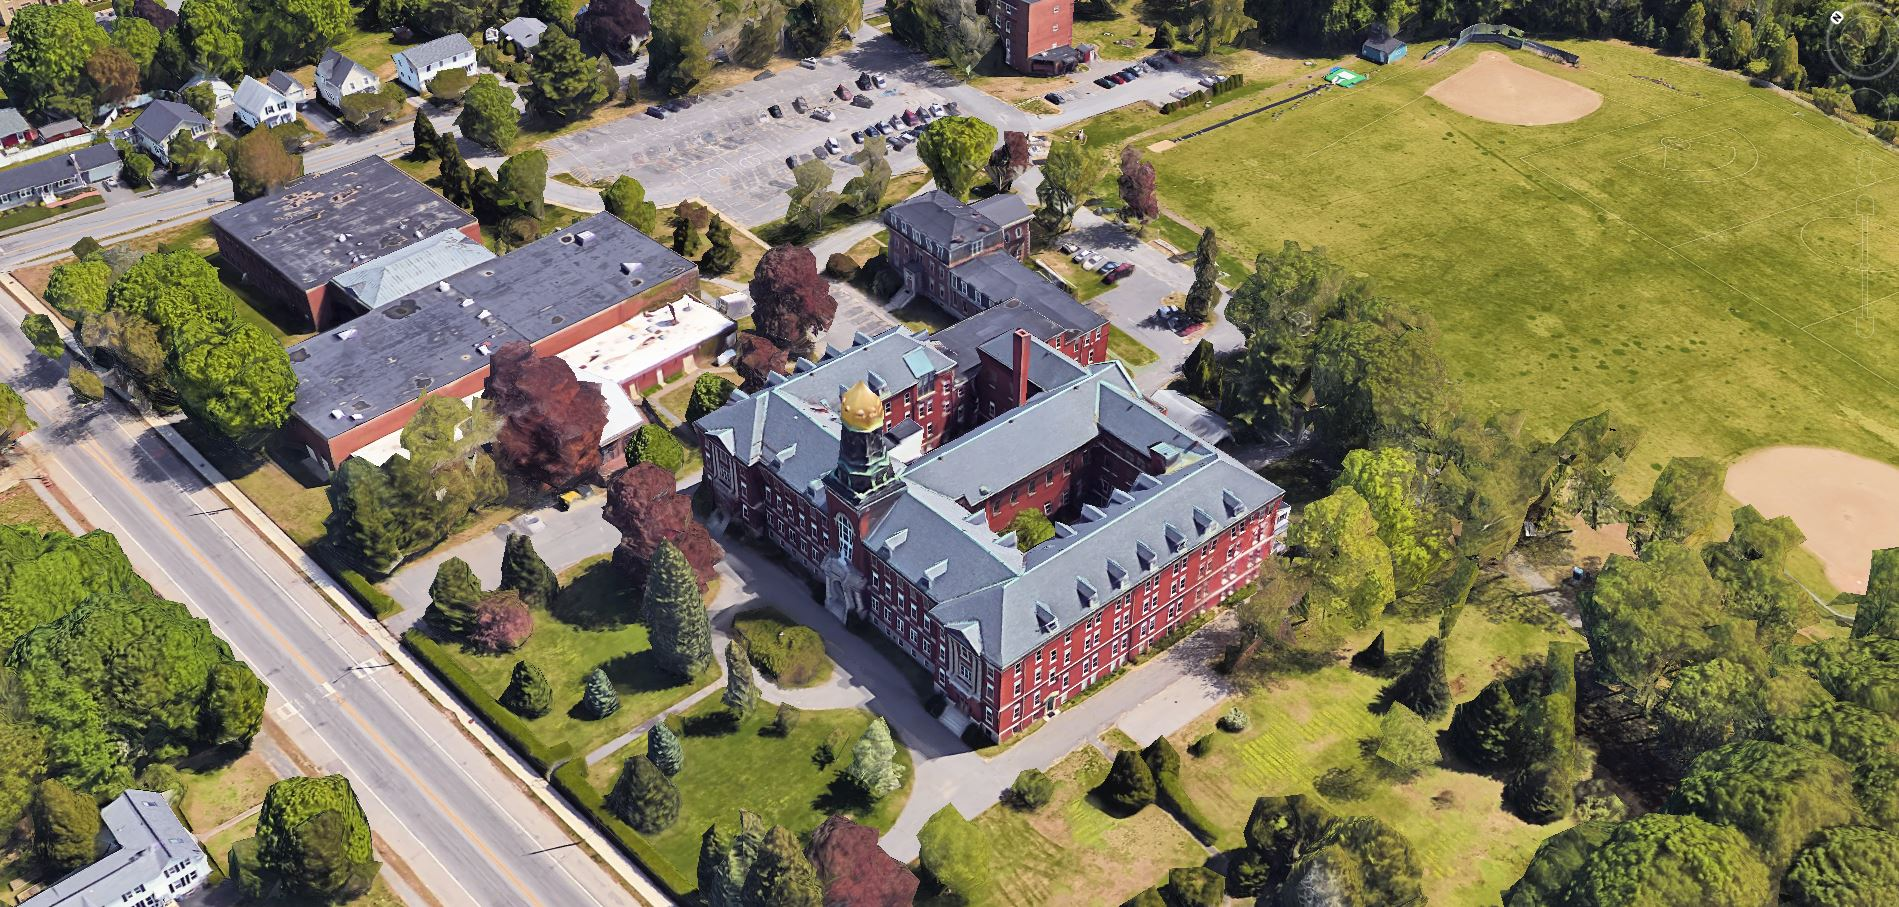 7 MOTHERHOUSE AERIAL.JPG